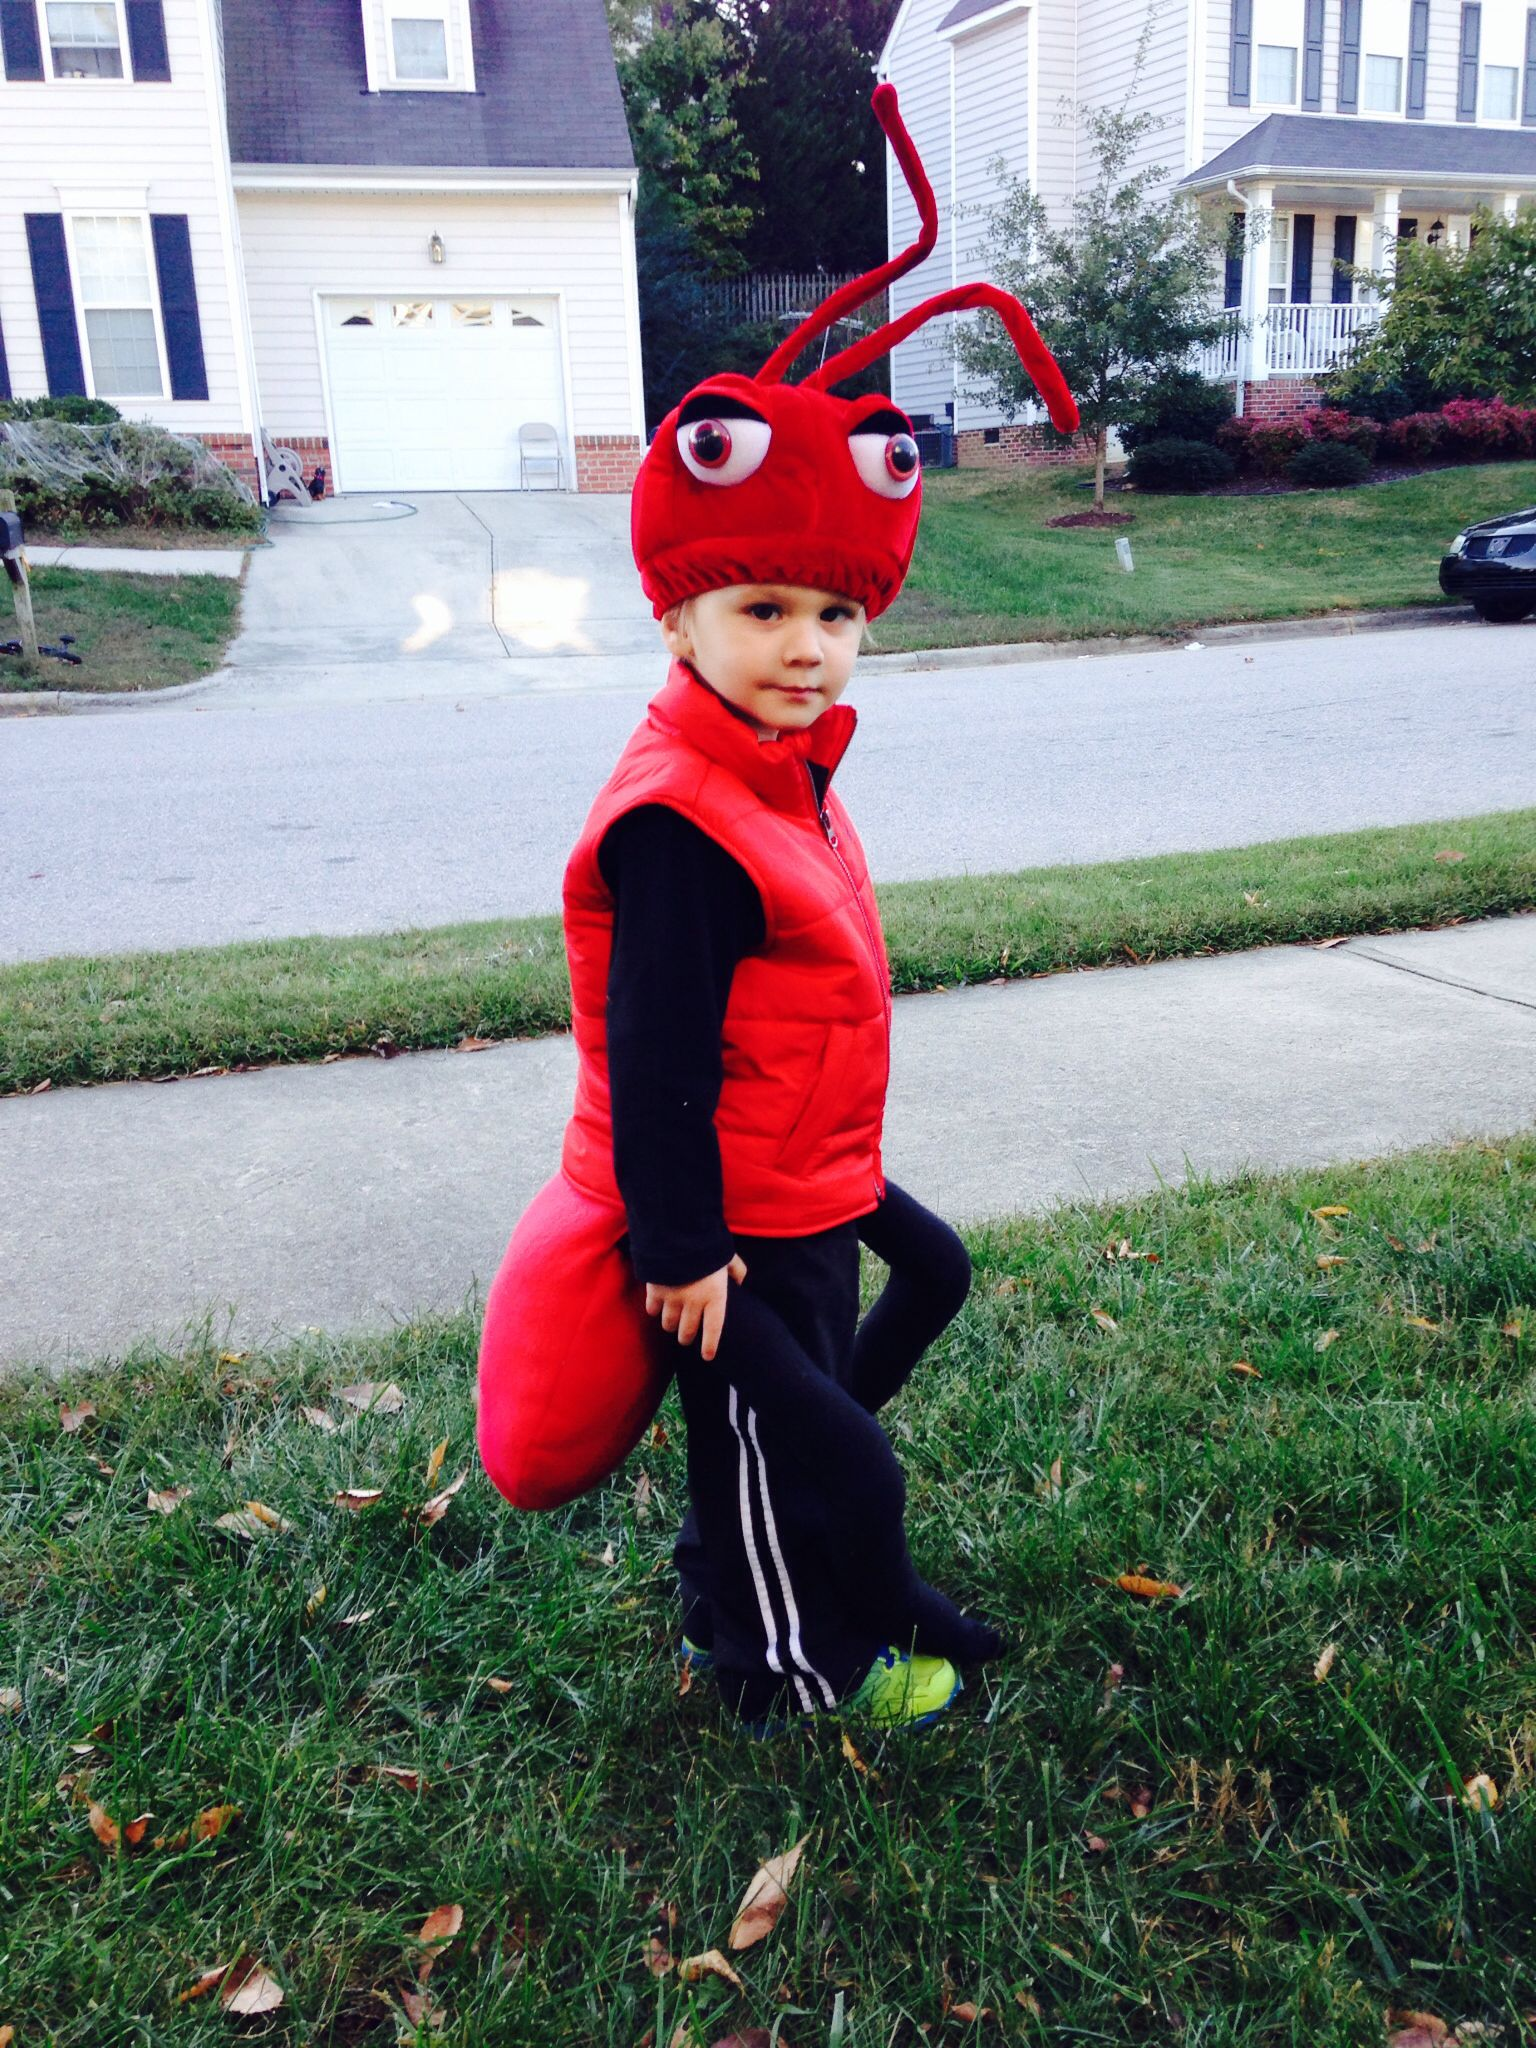 Fire ant costume | My stuff | Pinterest | Fire ants, Costumes and ...